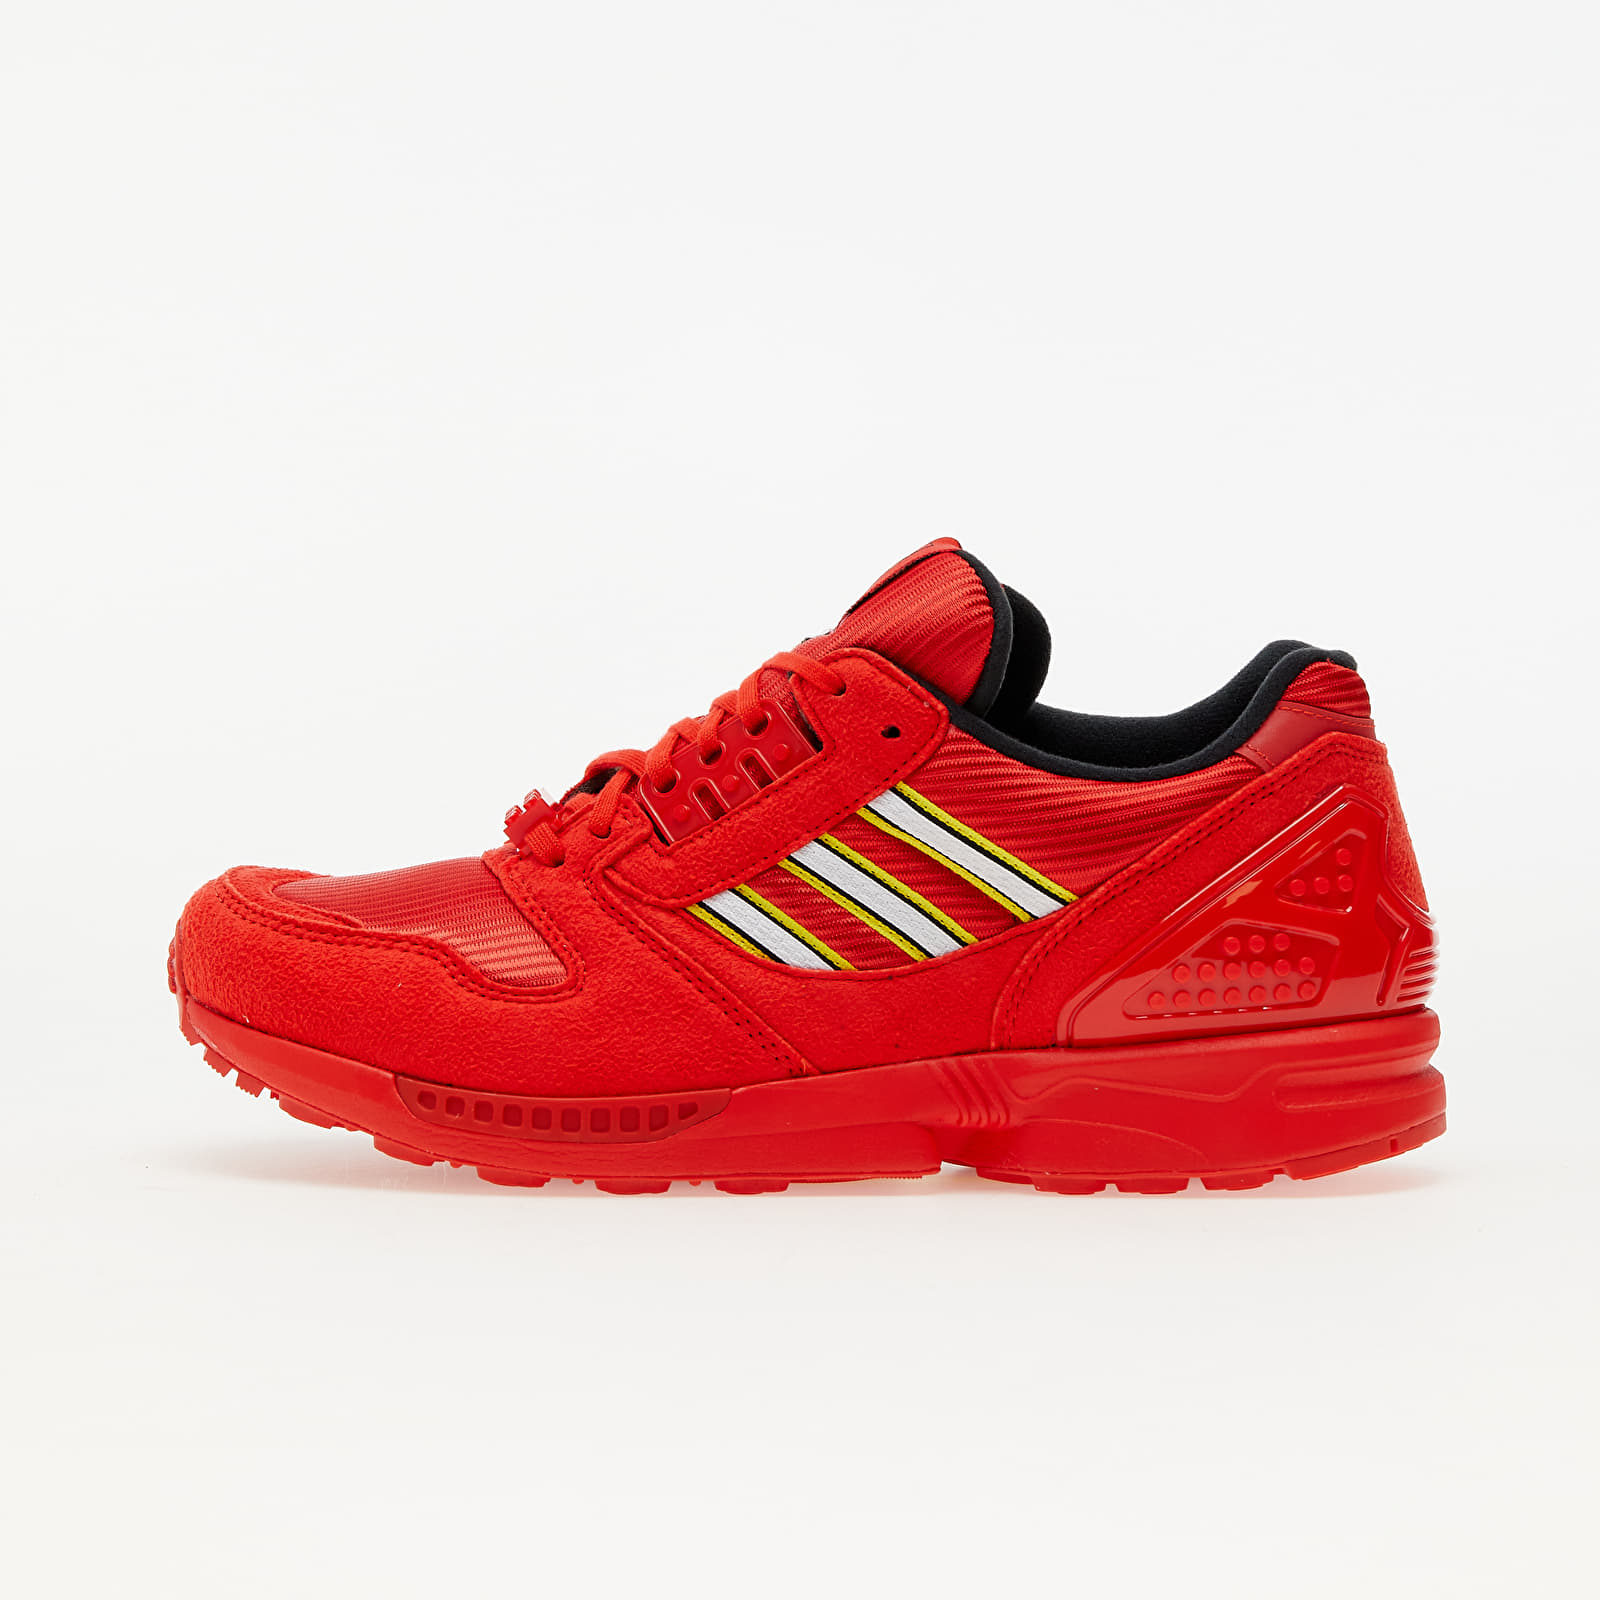 adidas ZX 8000 Lego Active Red/ Ftw White/ Active Red EUR 38